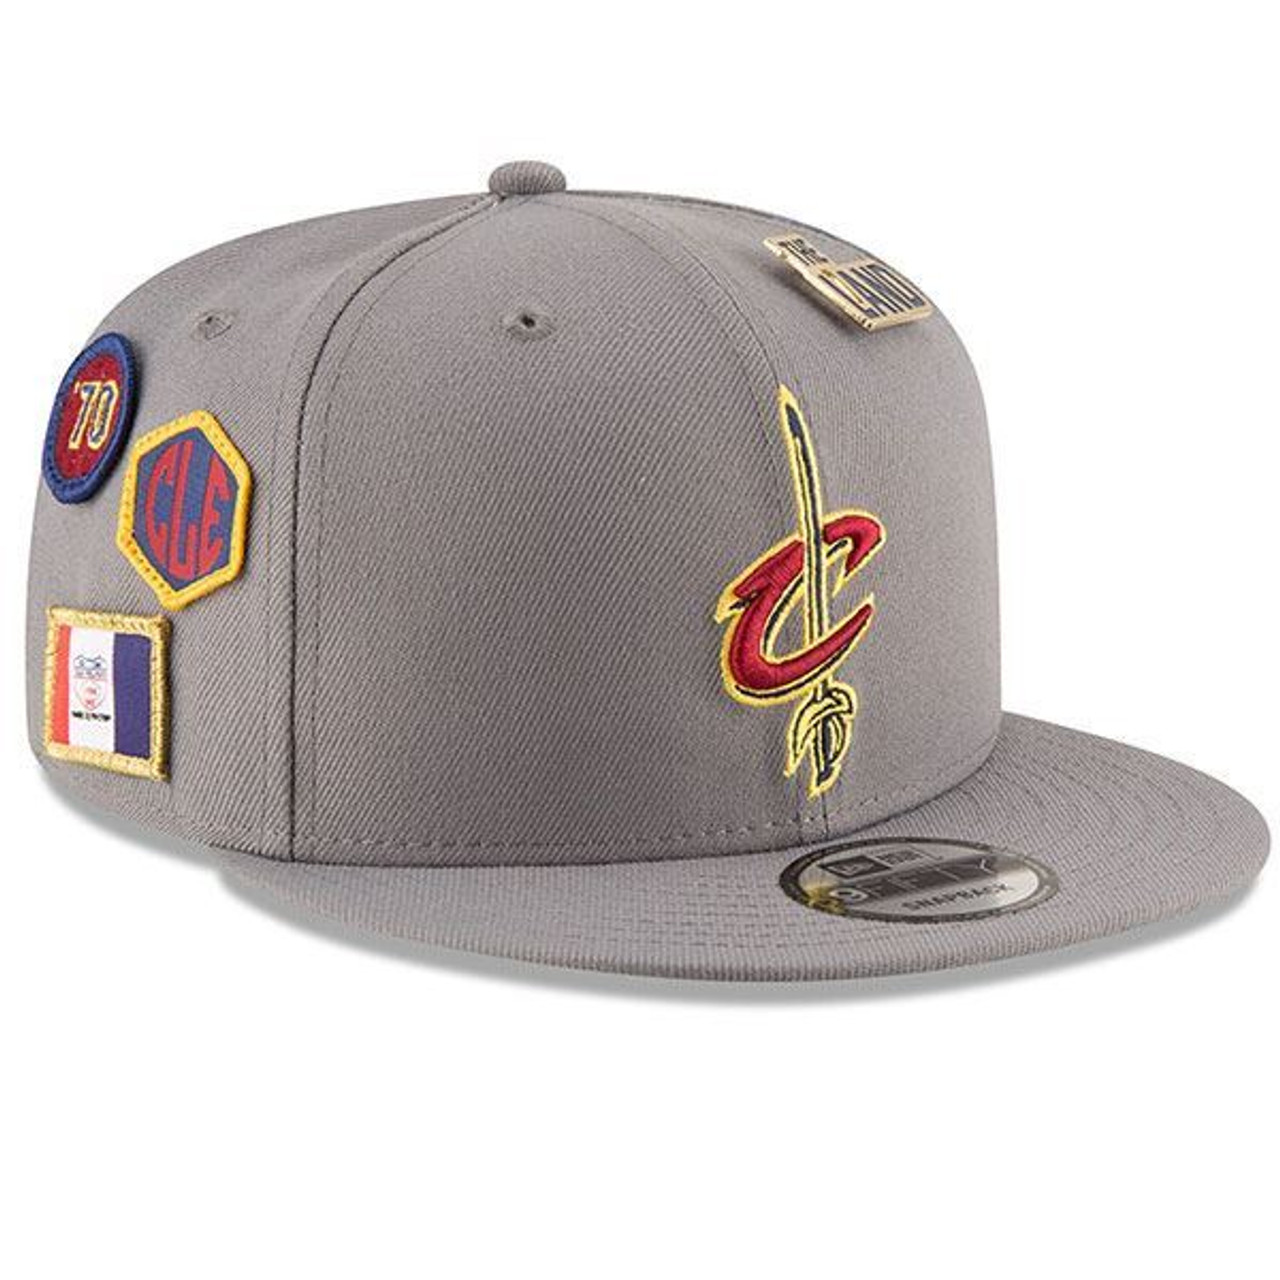 Youth 18-19 Draft Series Gray Snapback Cap - Cleveland Cavaliers ac69299dbbc